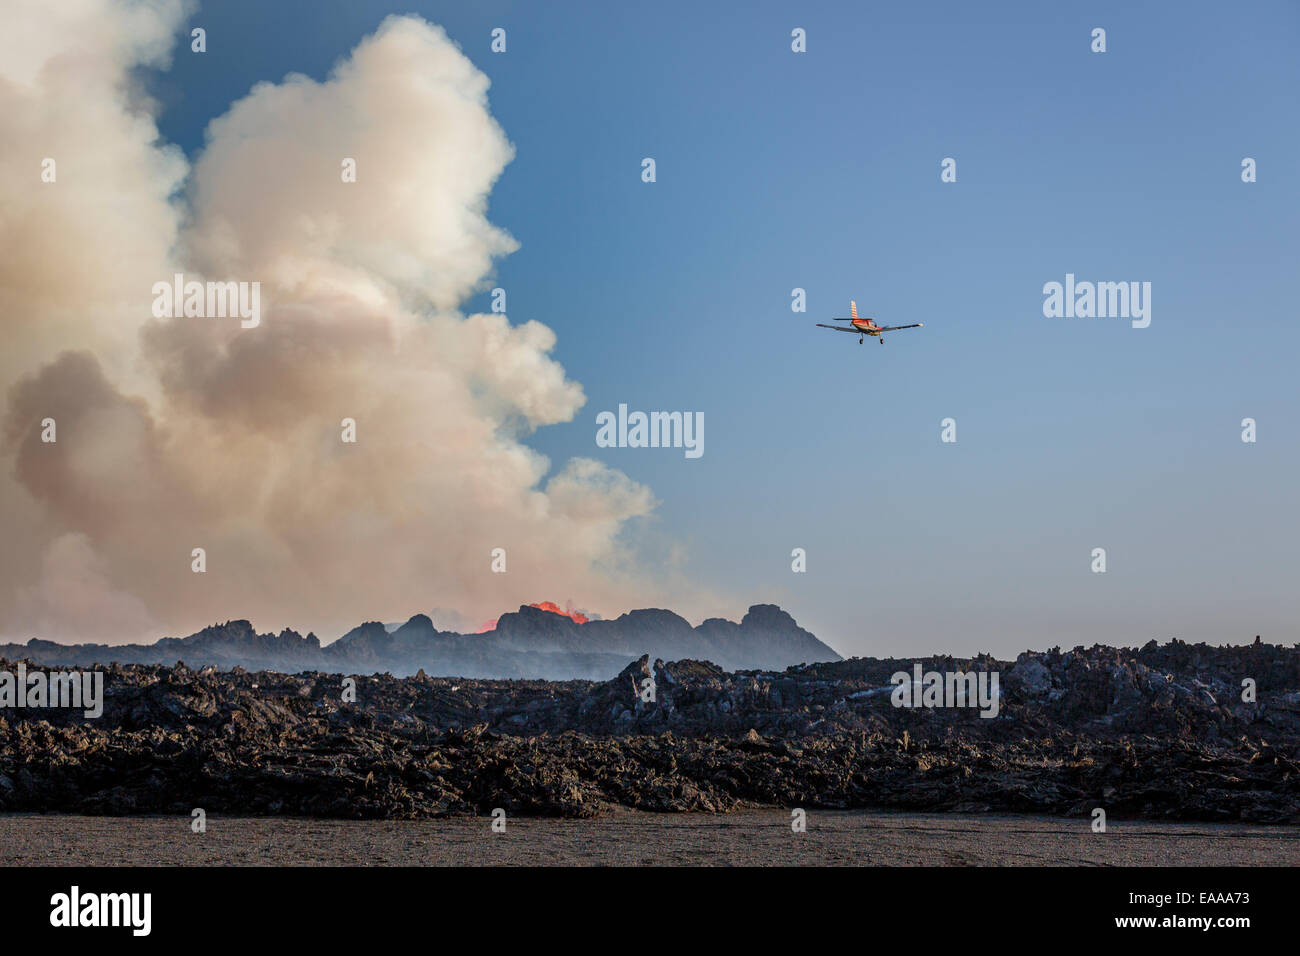 Small plane flying by the volcano eruption at Holuhraun, Bardarbunga Volcano, Iceland - Stock Image